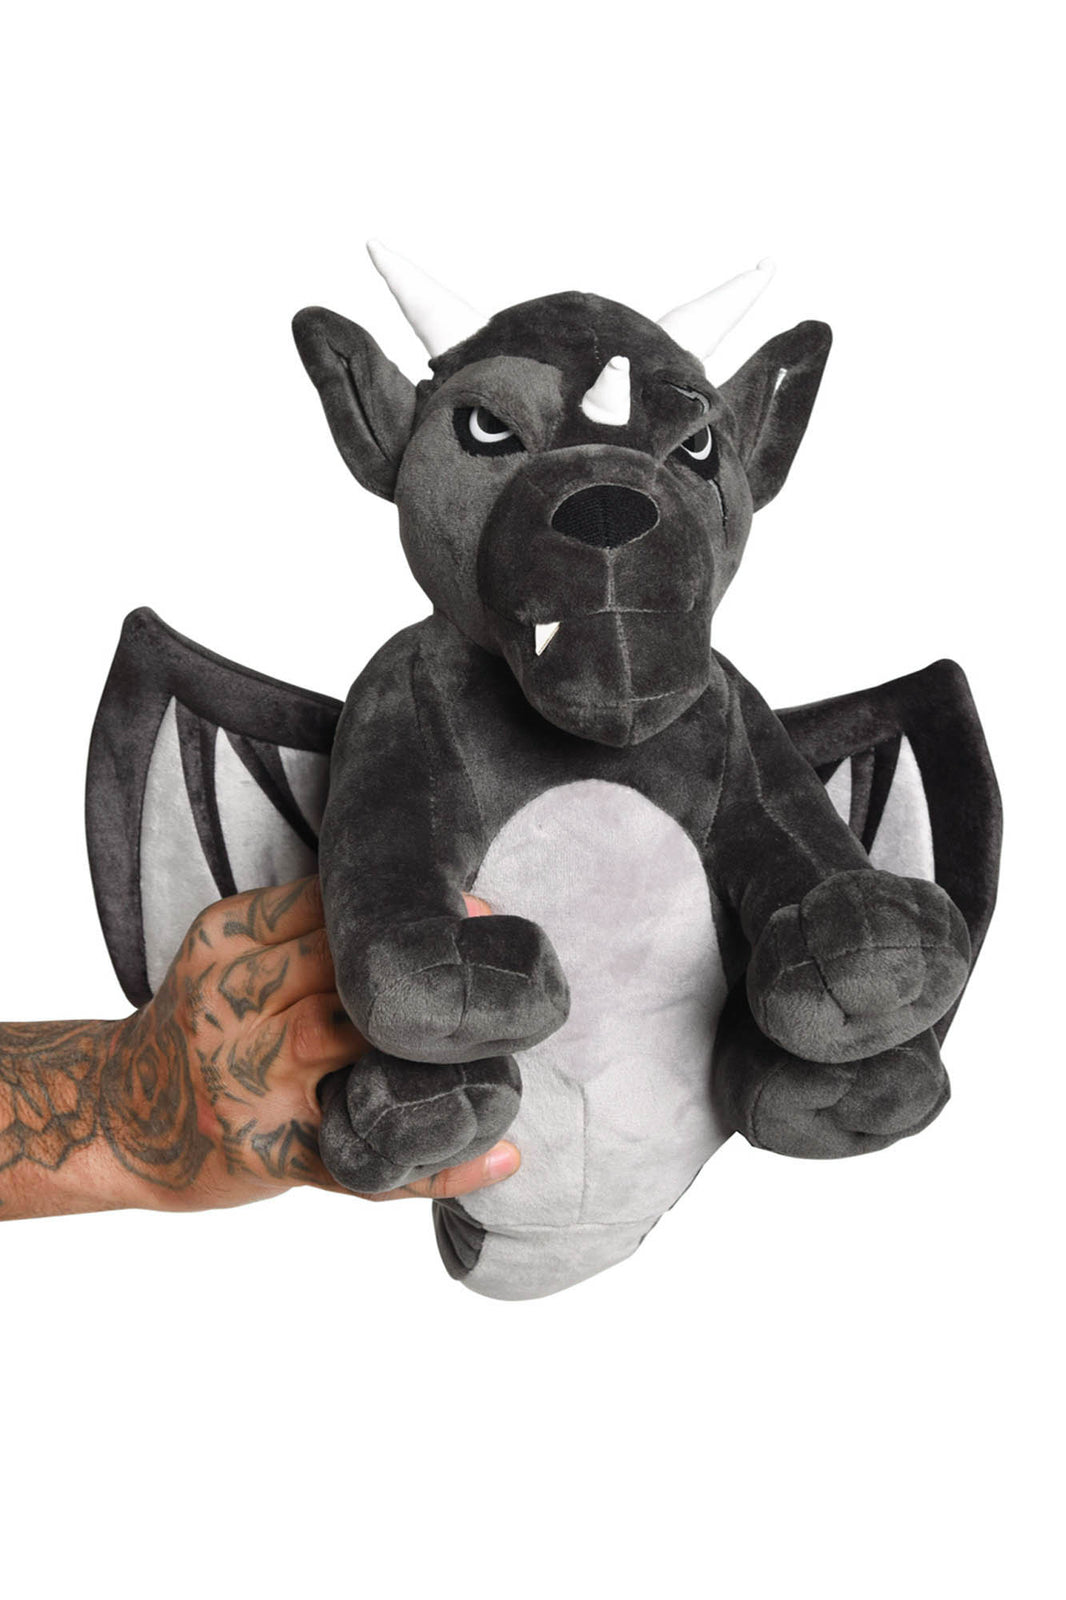 Gorgo Plush Toy